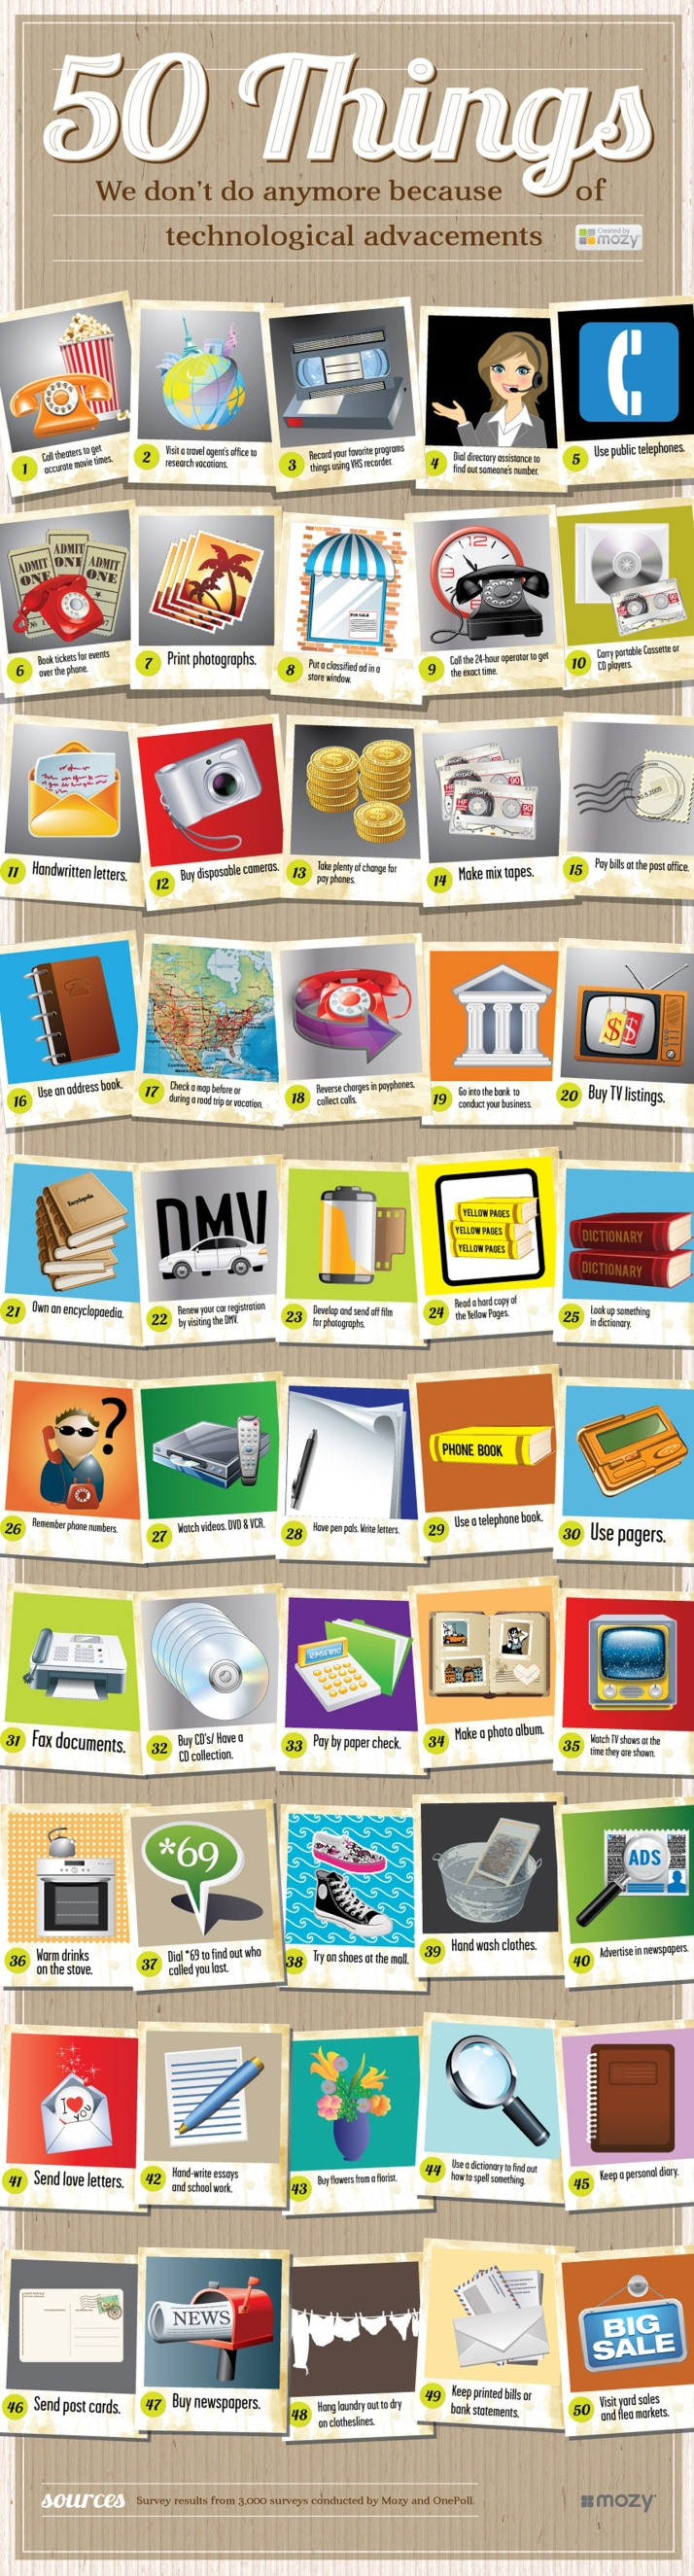 50 Things We No Longer Do Because Of Tech Advancements [Infographic]